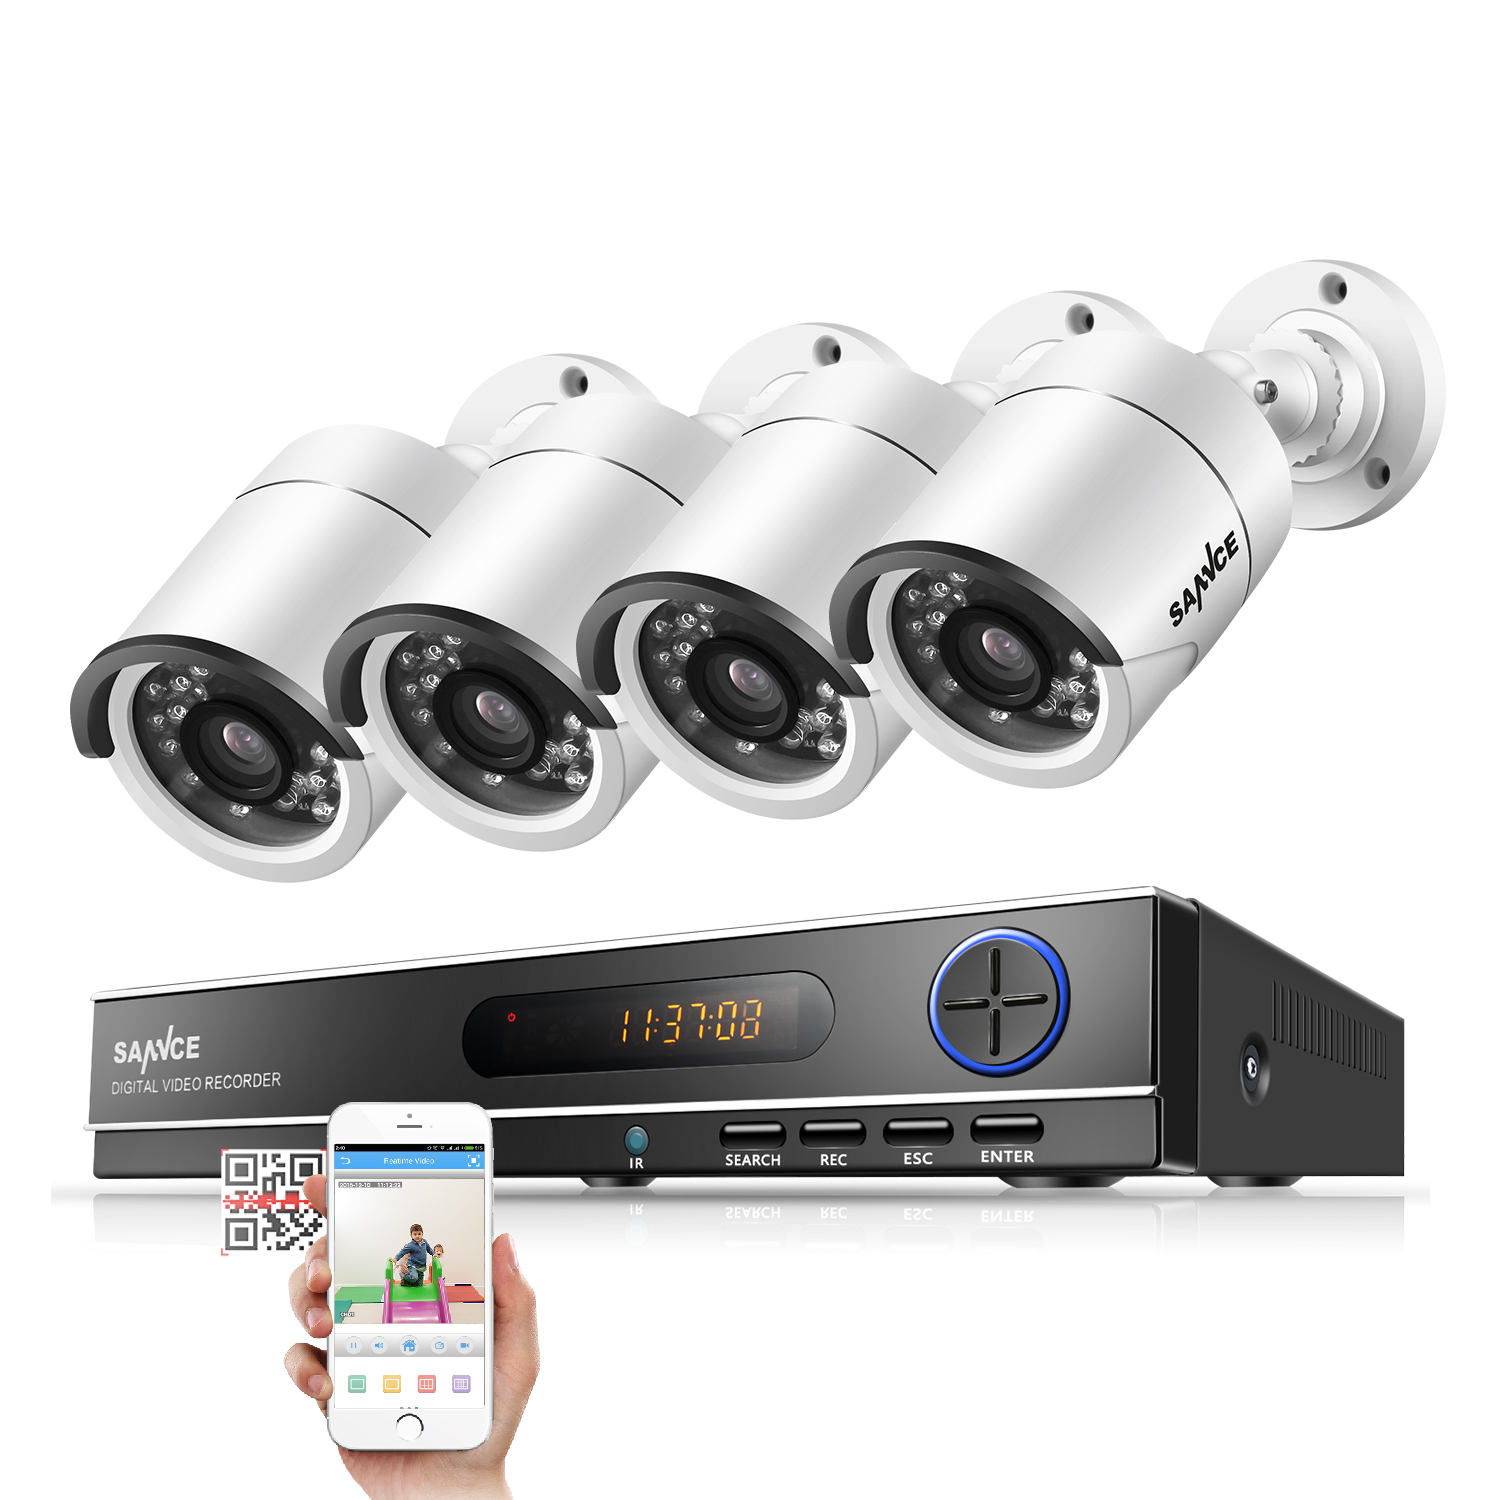 SANNCE 8CH 720P AHD DVR 4PCS 1200TVL IR Night Vision Outdoor CCTV Camera 24 LEDs Home Security CCTV System Surveillance Kit sannce 8ch 720p ahd dvr 4pcs 1200tvl ir night vision outdoor cctv camera 24 leds home security cctv system surveillance kit